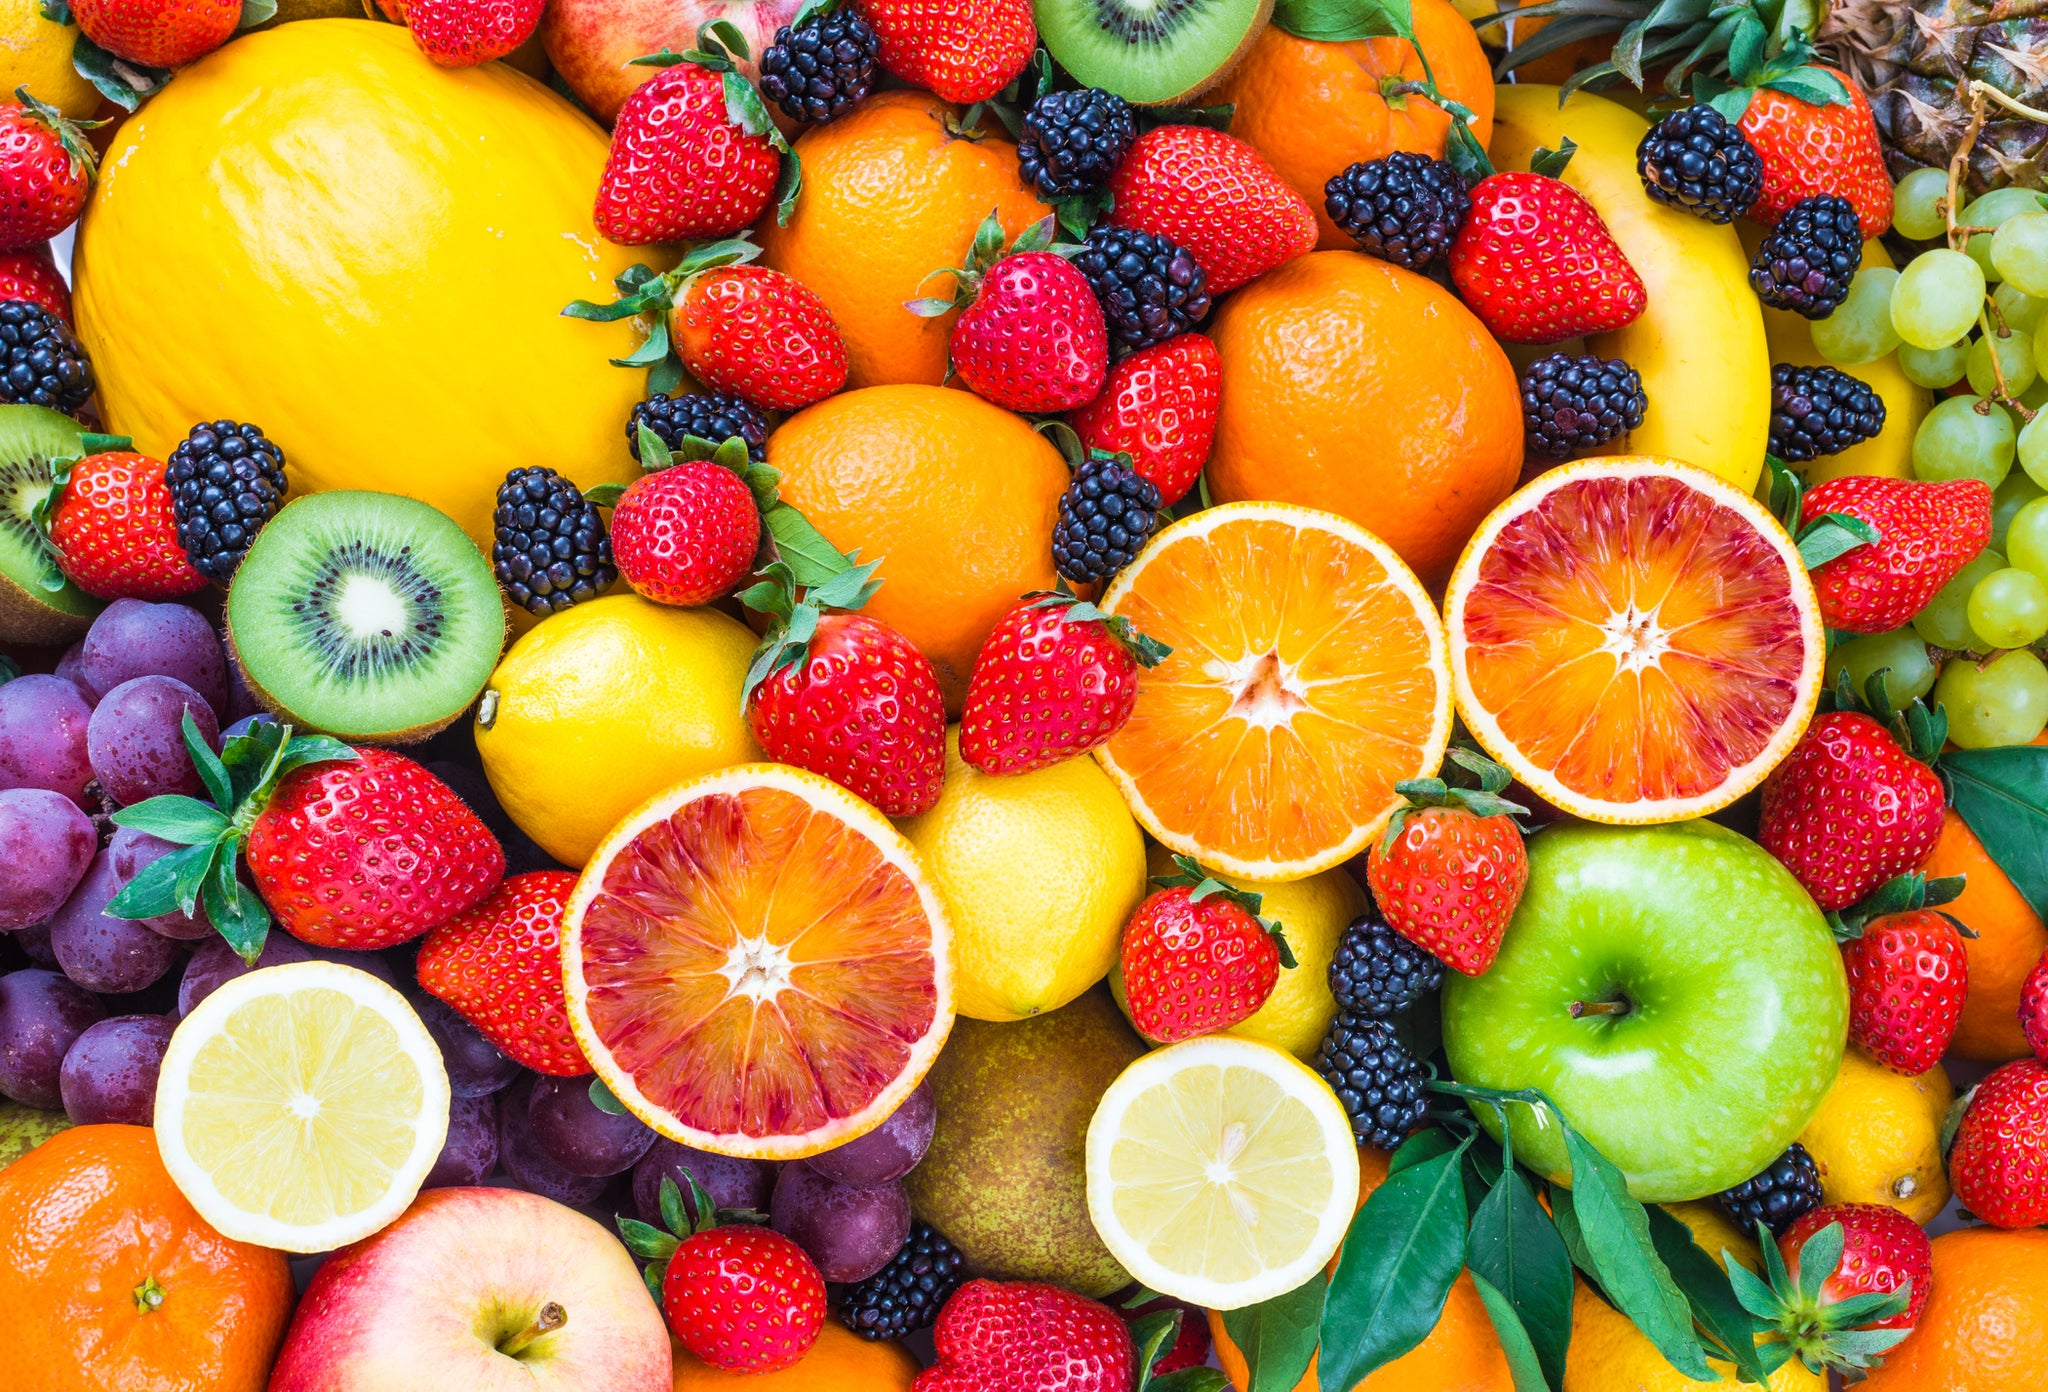 bright and colorful fruits and veggies in a pile